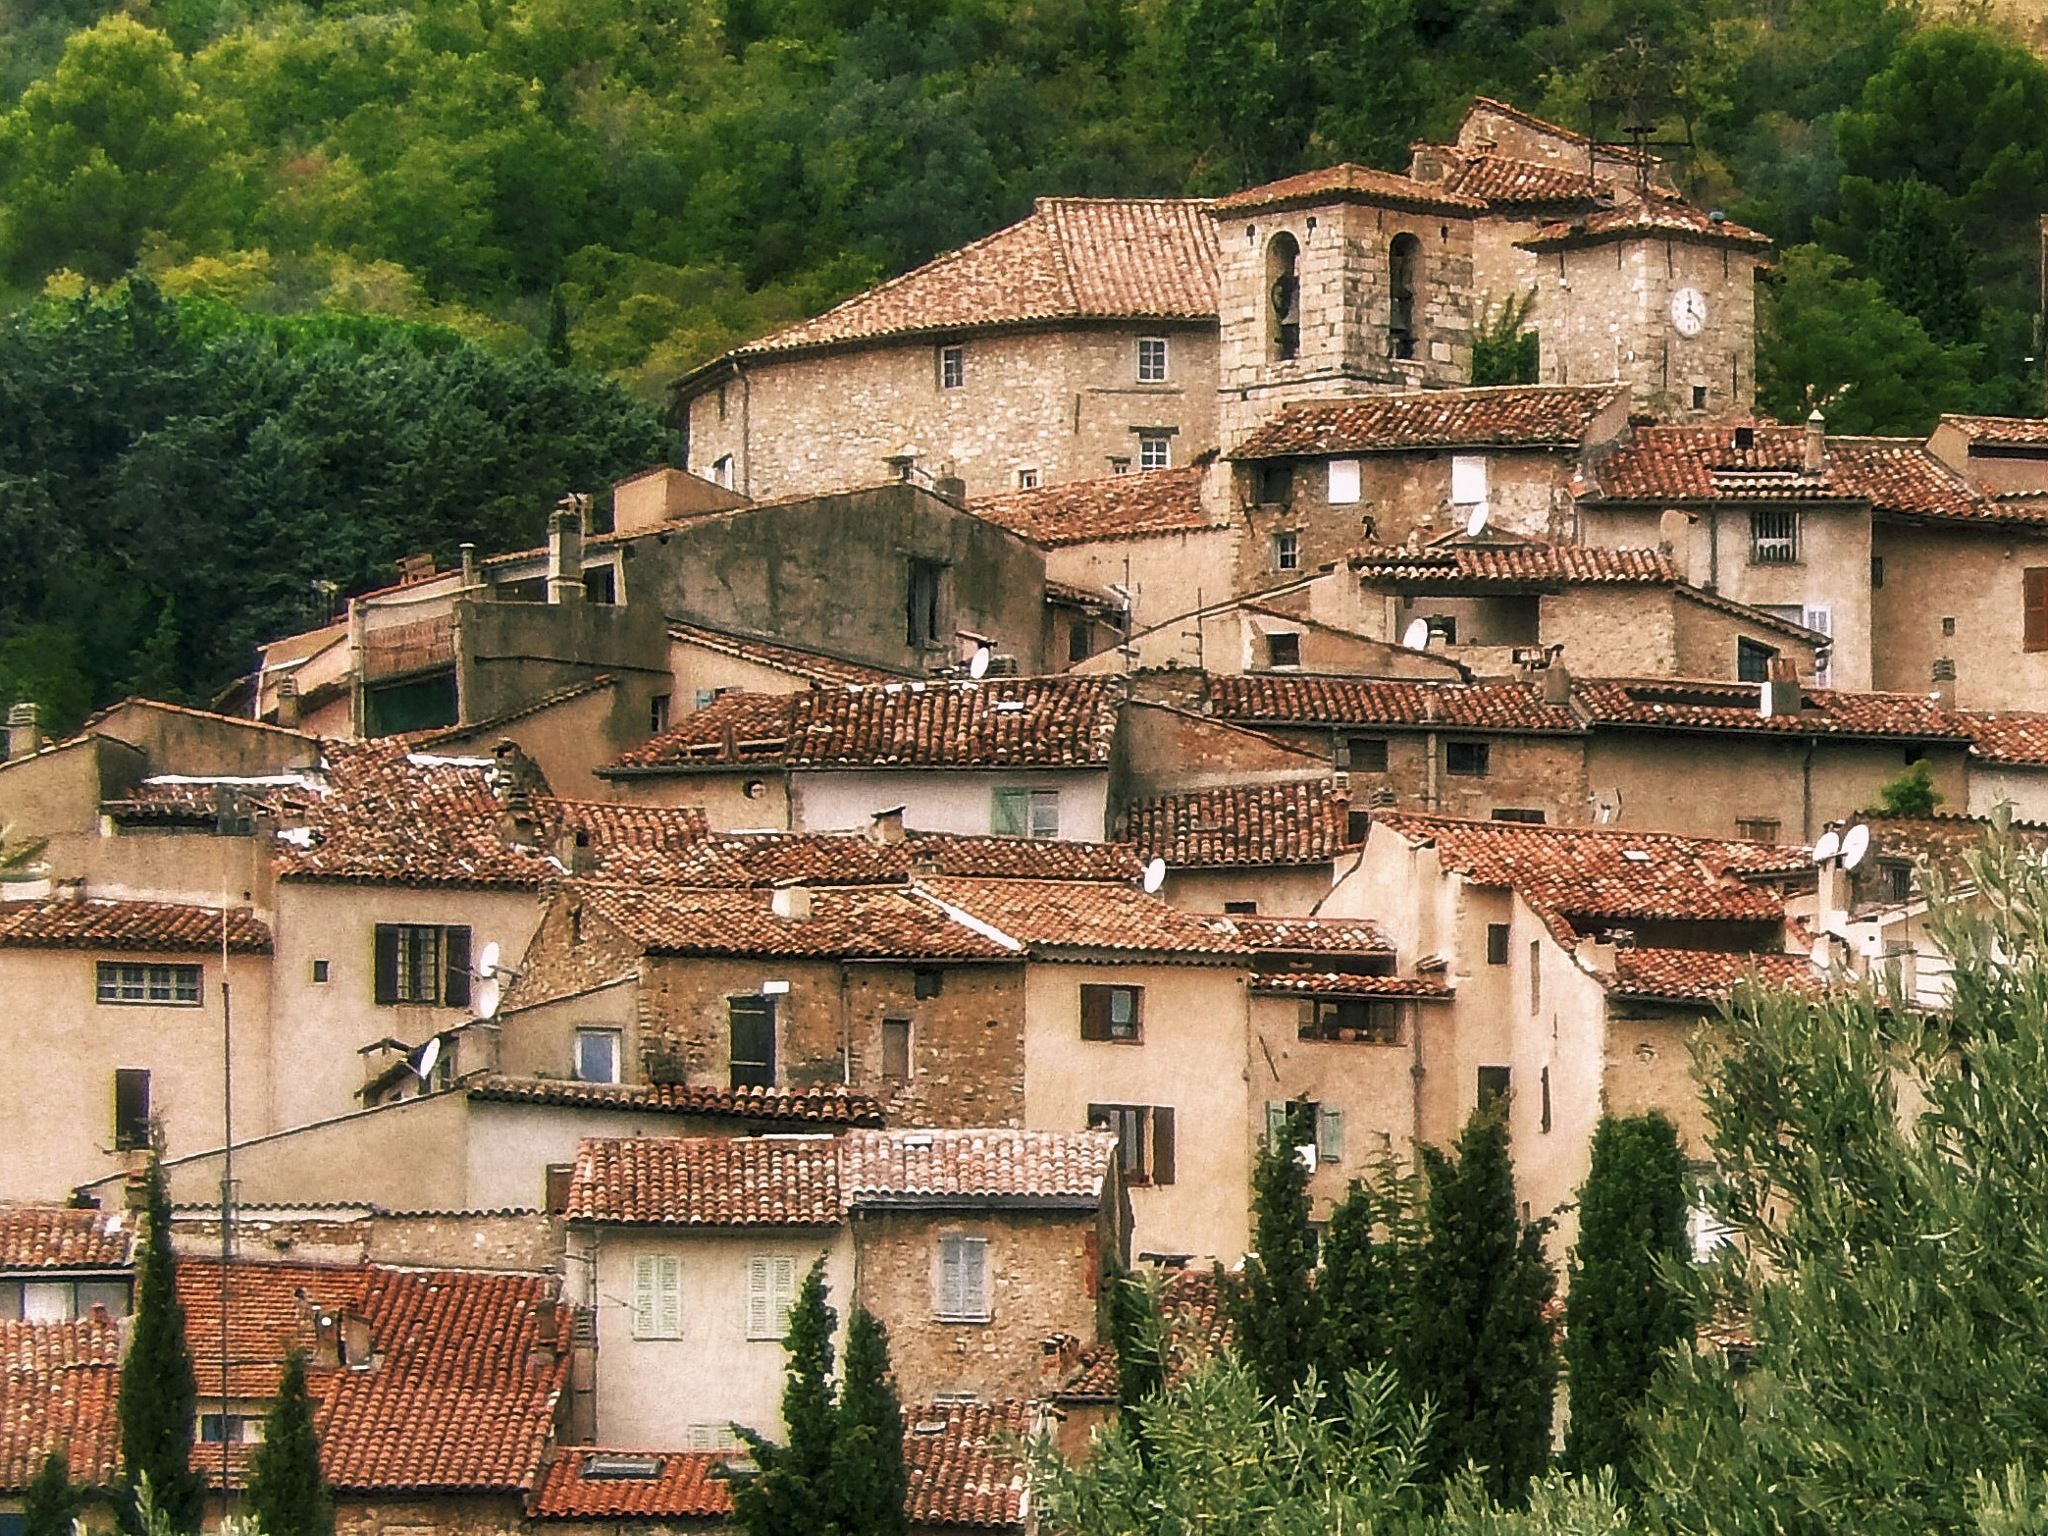 Terracotta roofs  by Jackie06